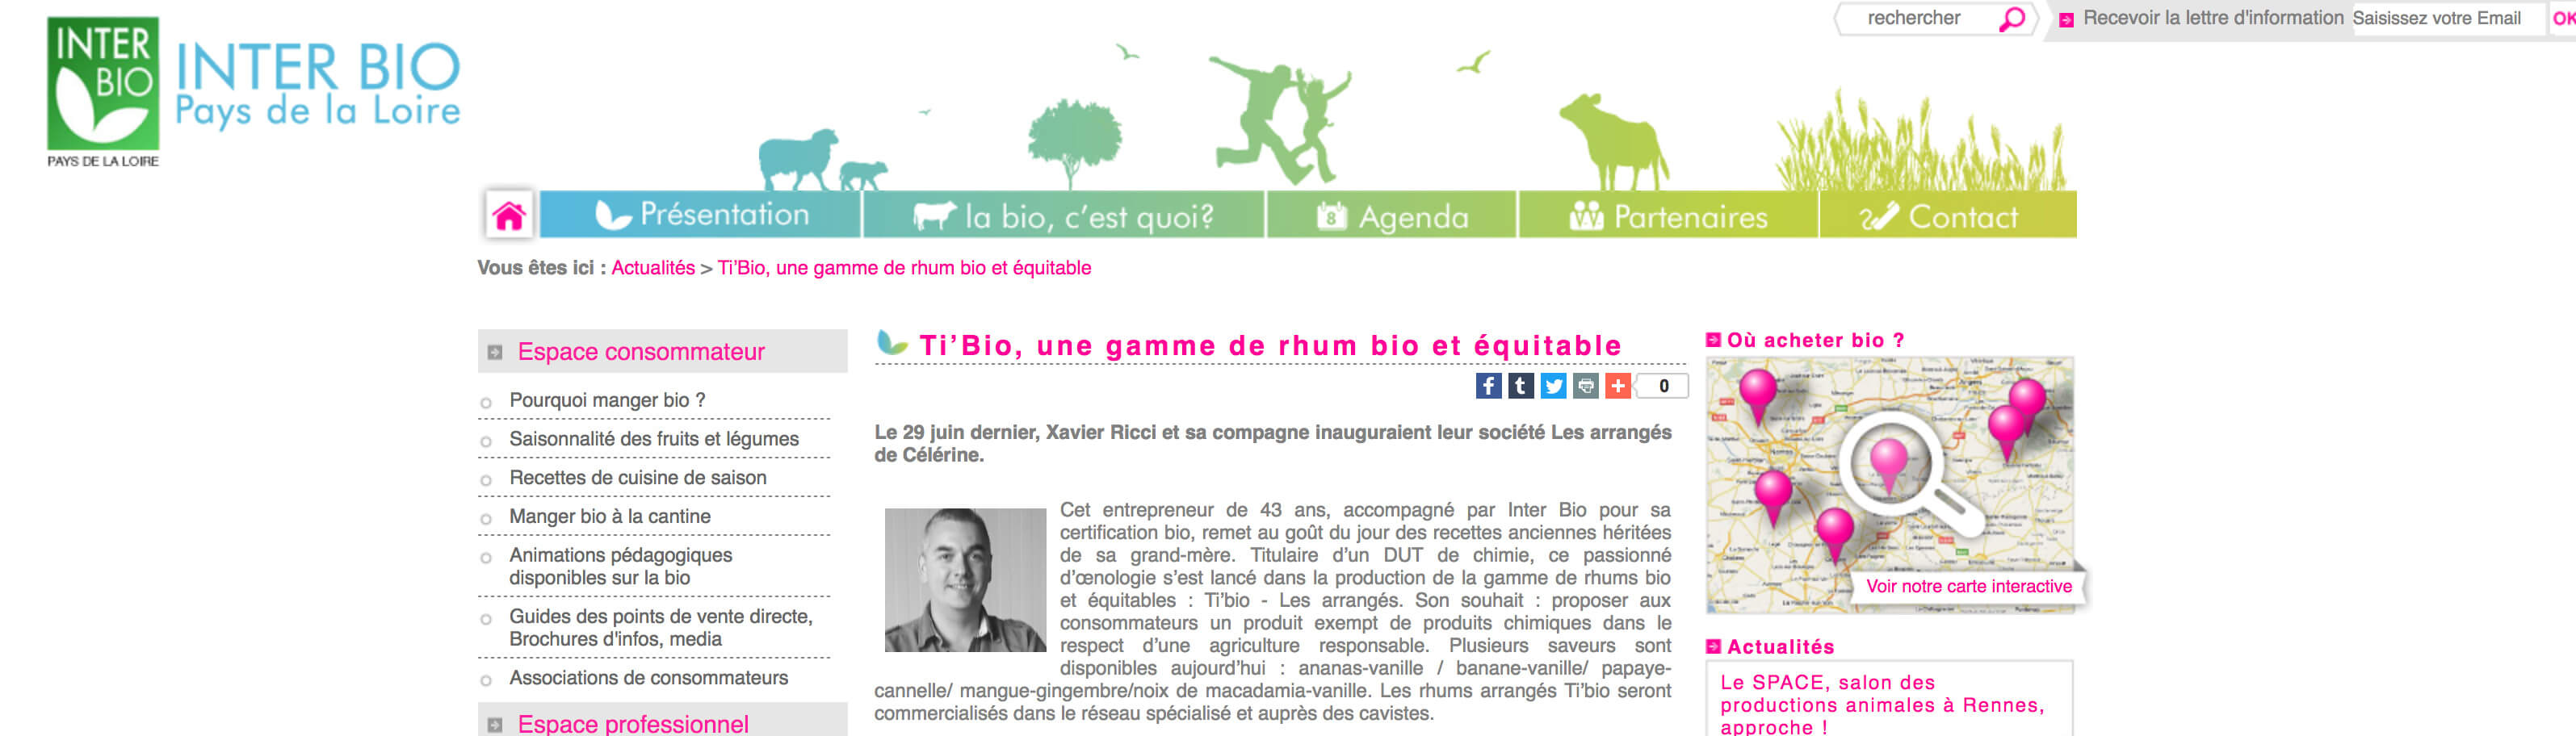 Article agence InterBio